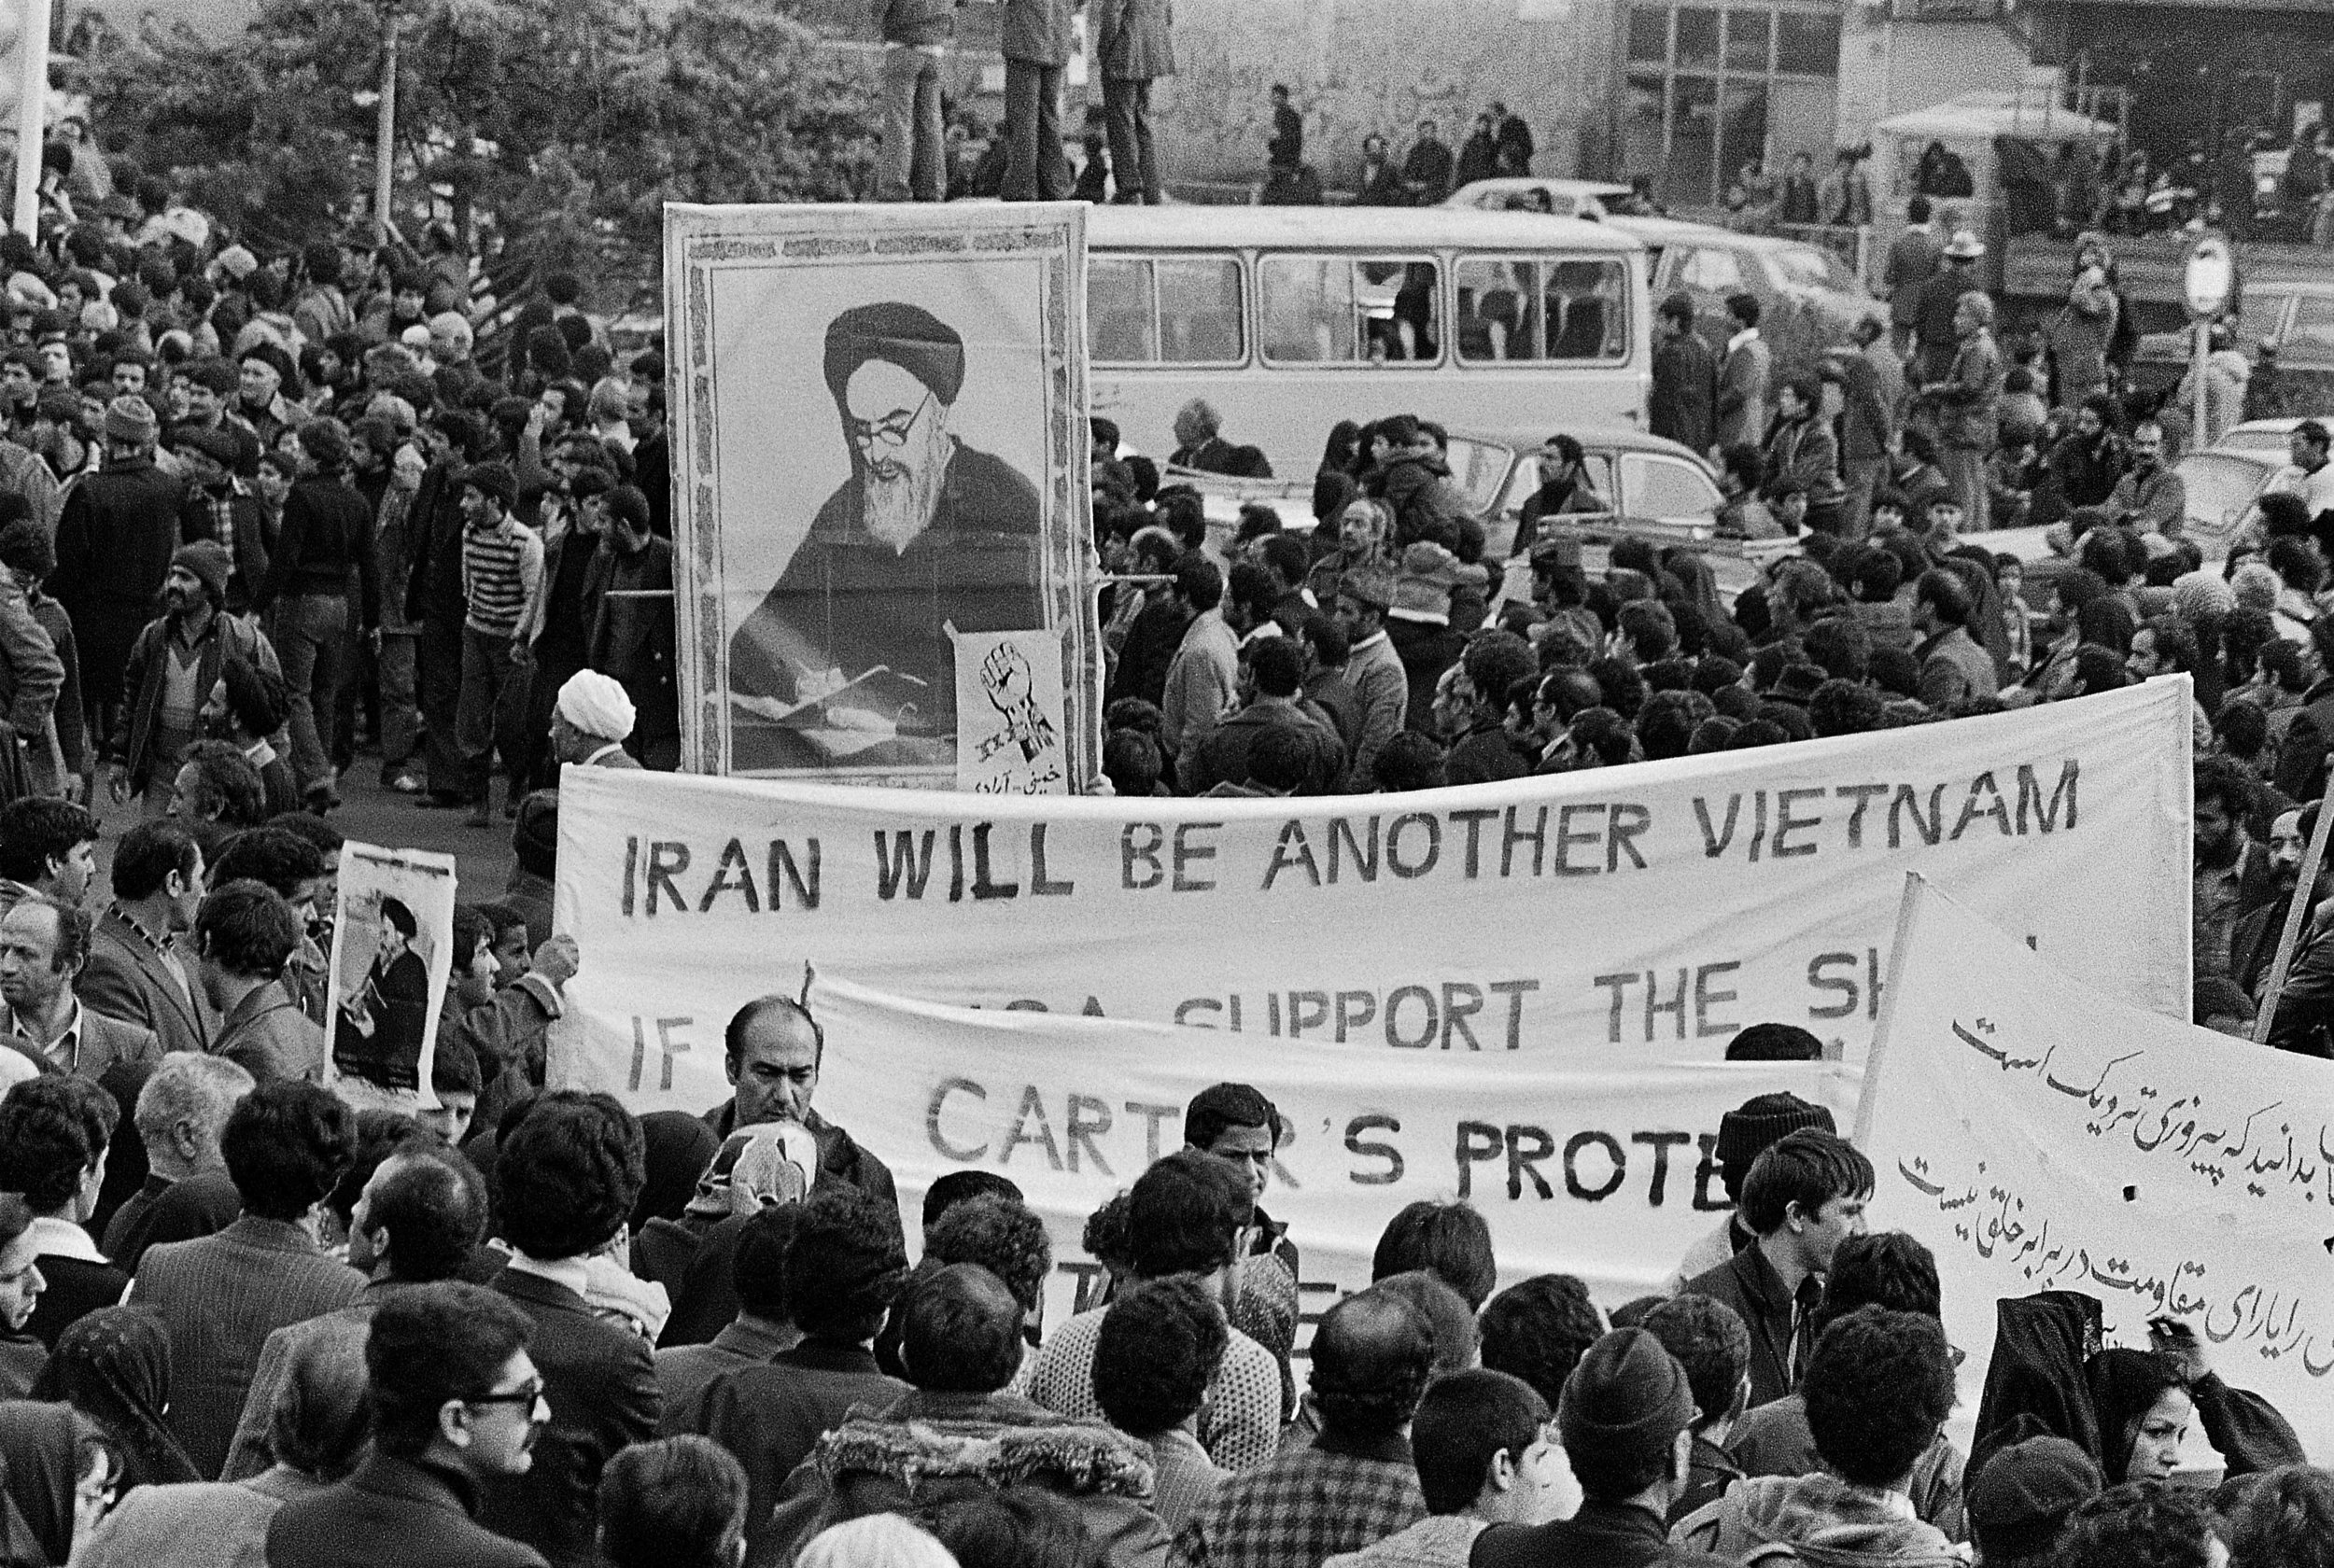 Iran will be another vietnam.jpg